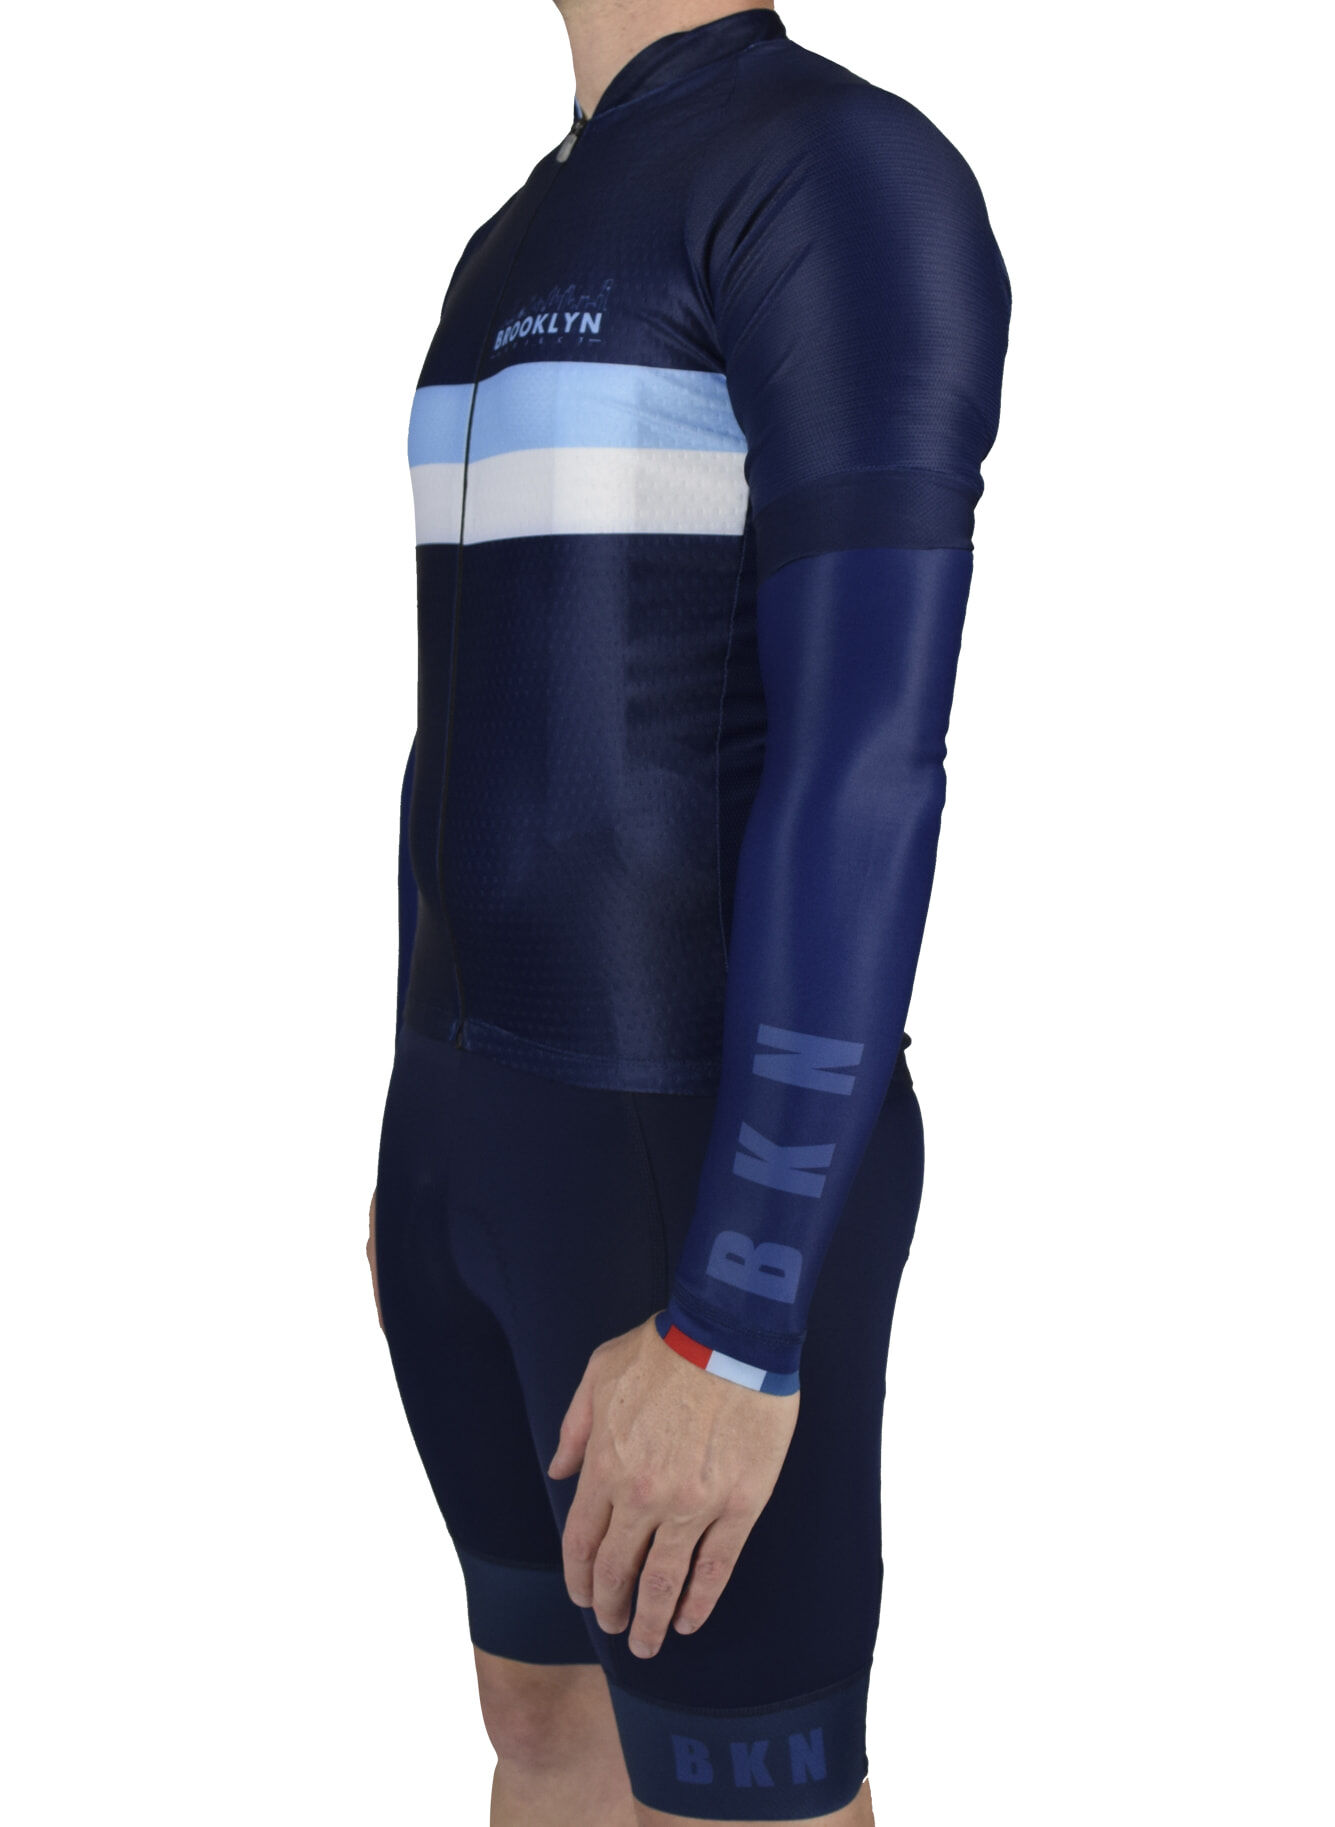 Navy Arm Warmers Full Kit side view